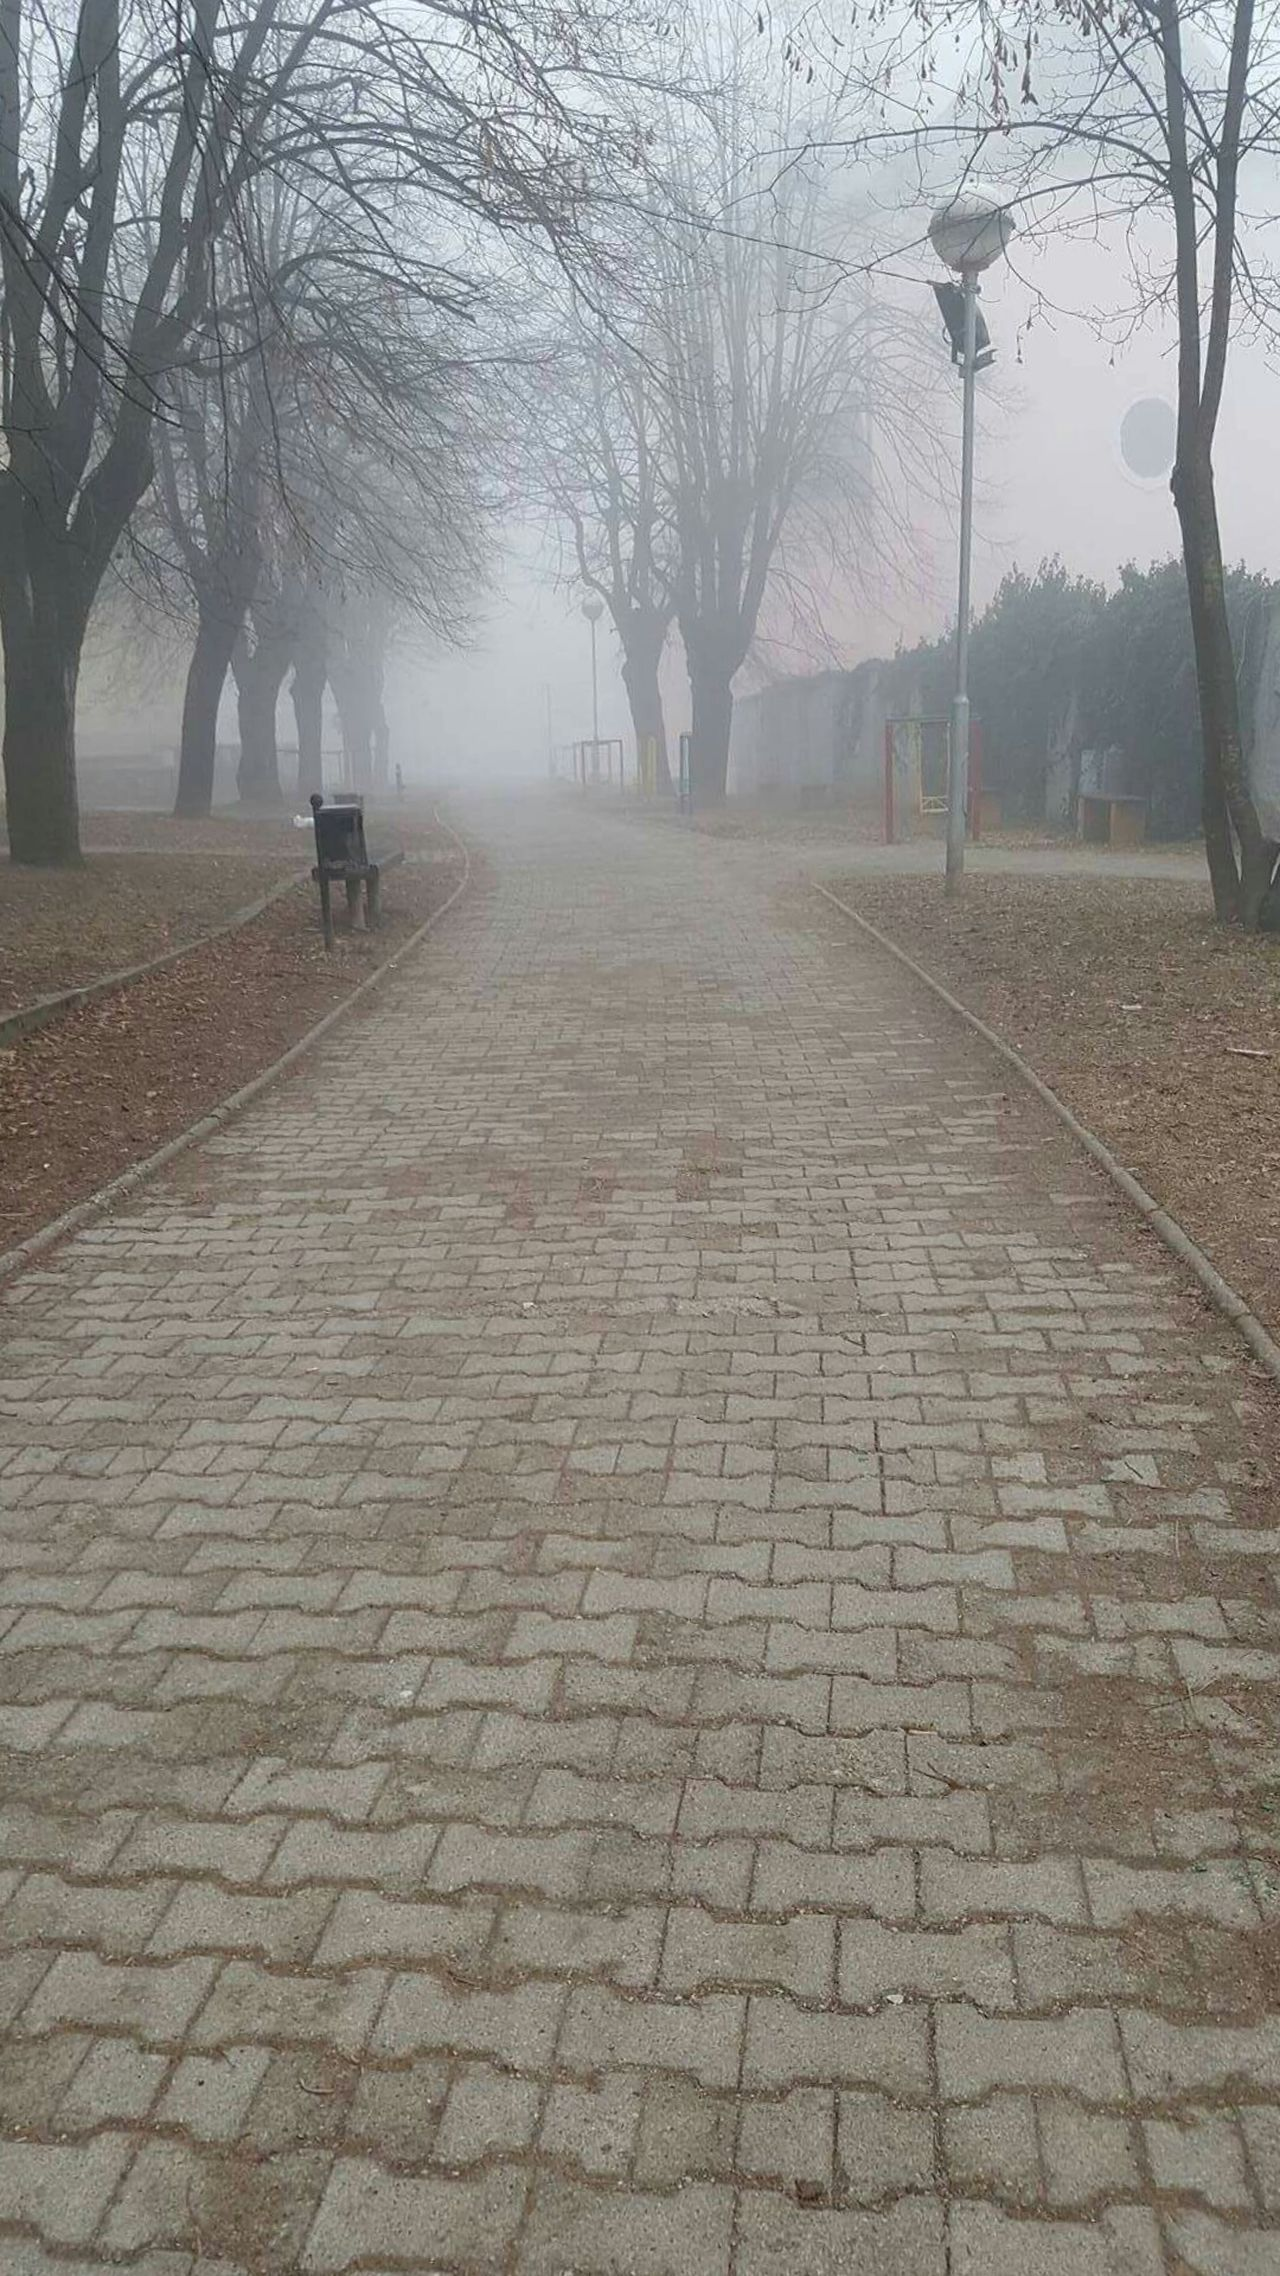 No Filter, No Edit, Just Photography Low Angle View Just Photography Landscape Foggy Morning Way To Class Love Croatia Trees Foggy Beautiful The Great Outdoors With Adobe Beauty In Nature Slovenia One Day ❤ The Path Less Traveled By Pointer Footwear